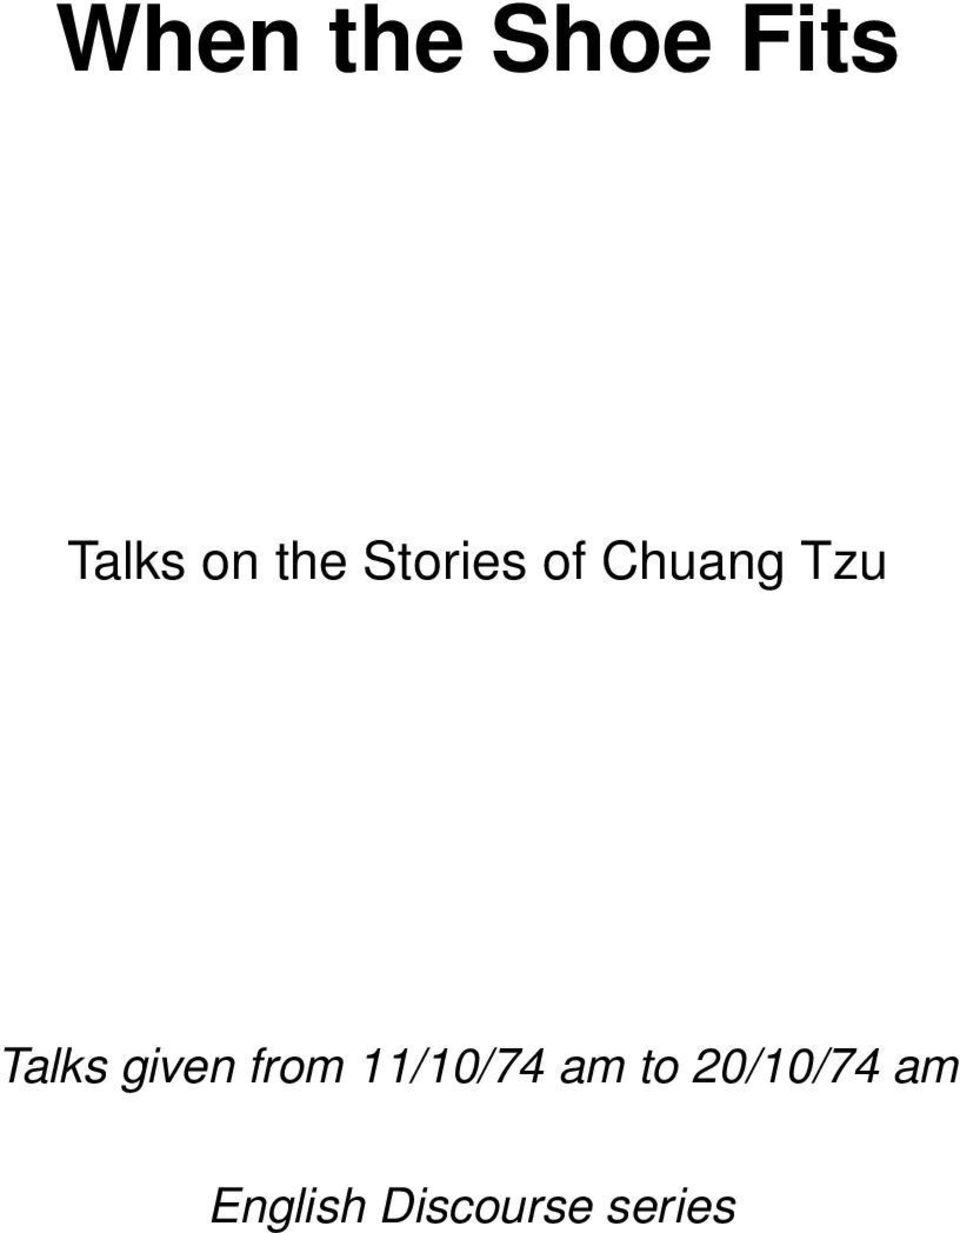 Talks given from 11/10/74 am